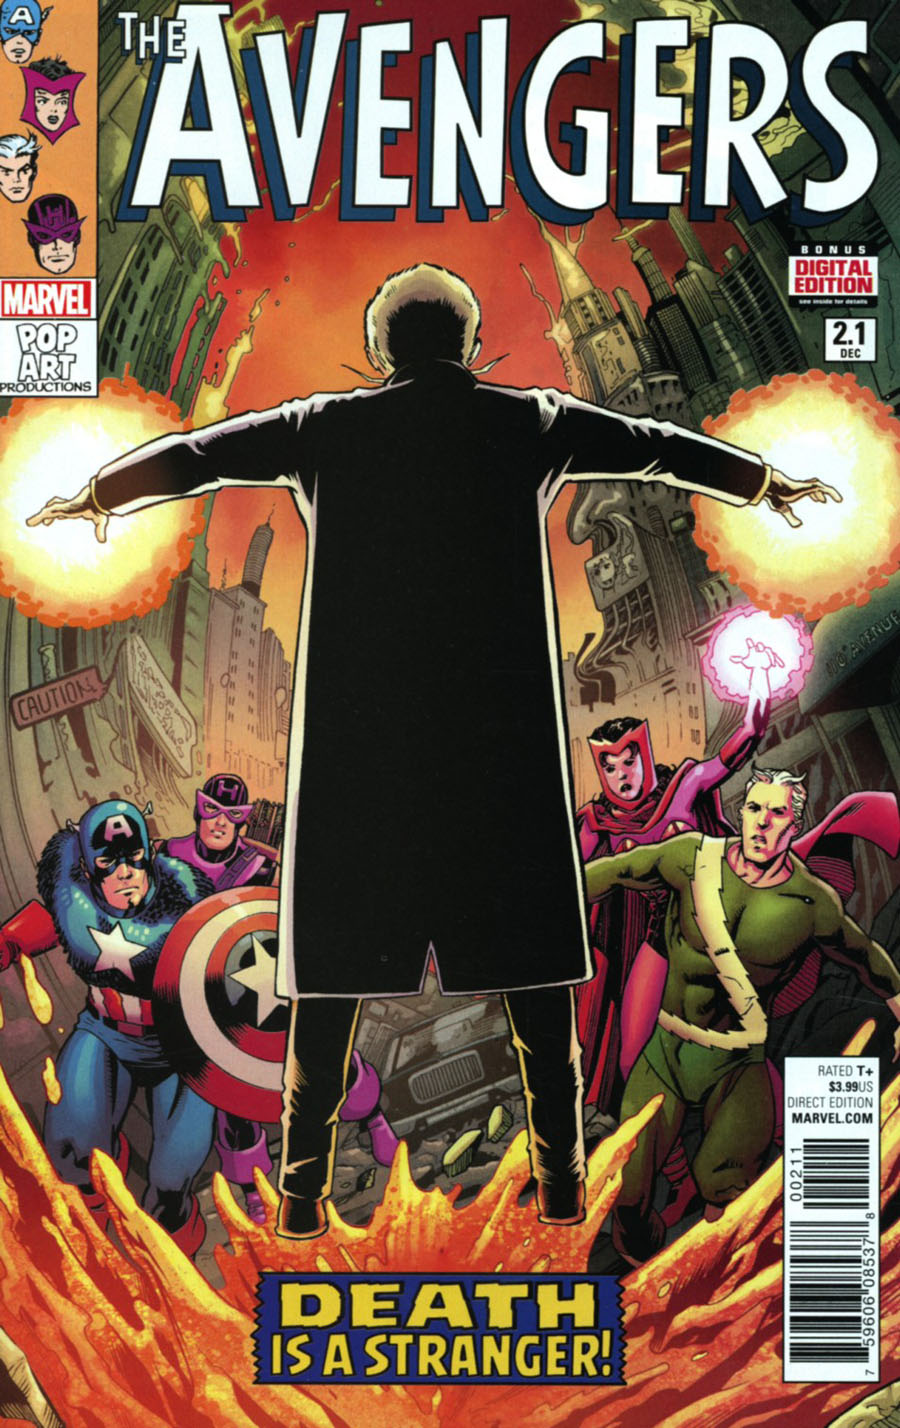 Avengers Vol 6 #2.1 Cover A Regular Barry Kitson Cover